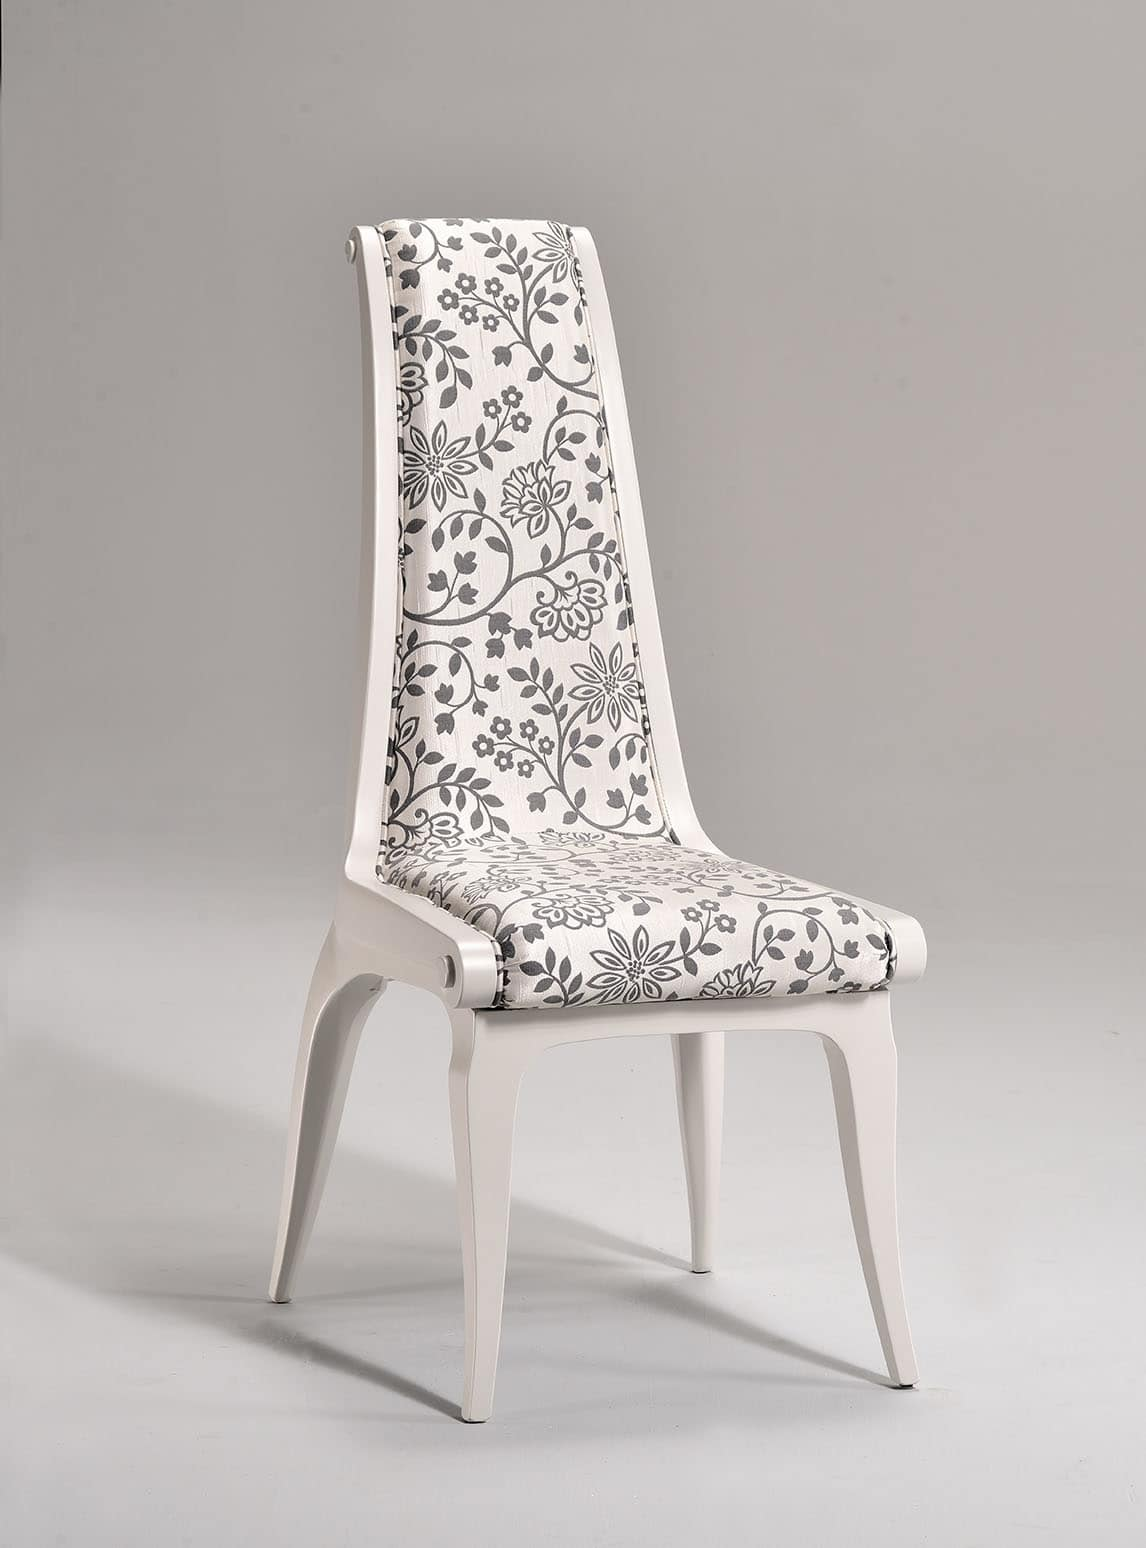 AFRODITE chair 8291S, Classic style chair, padded seat and backrest